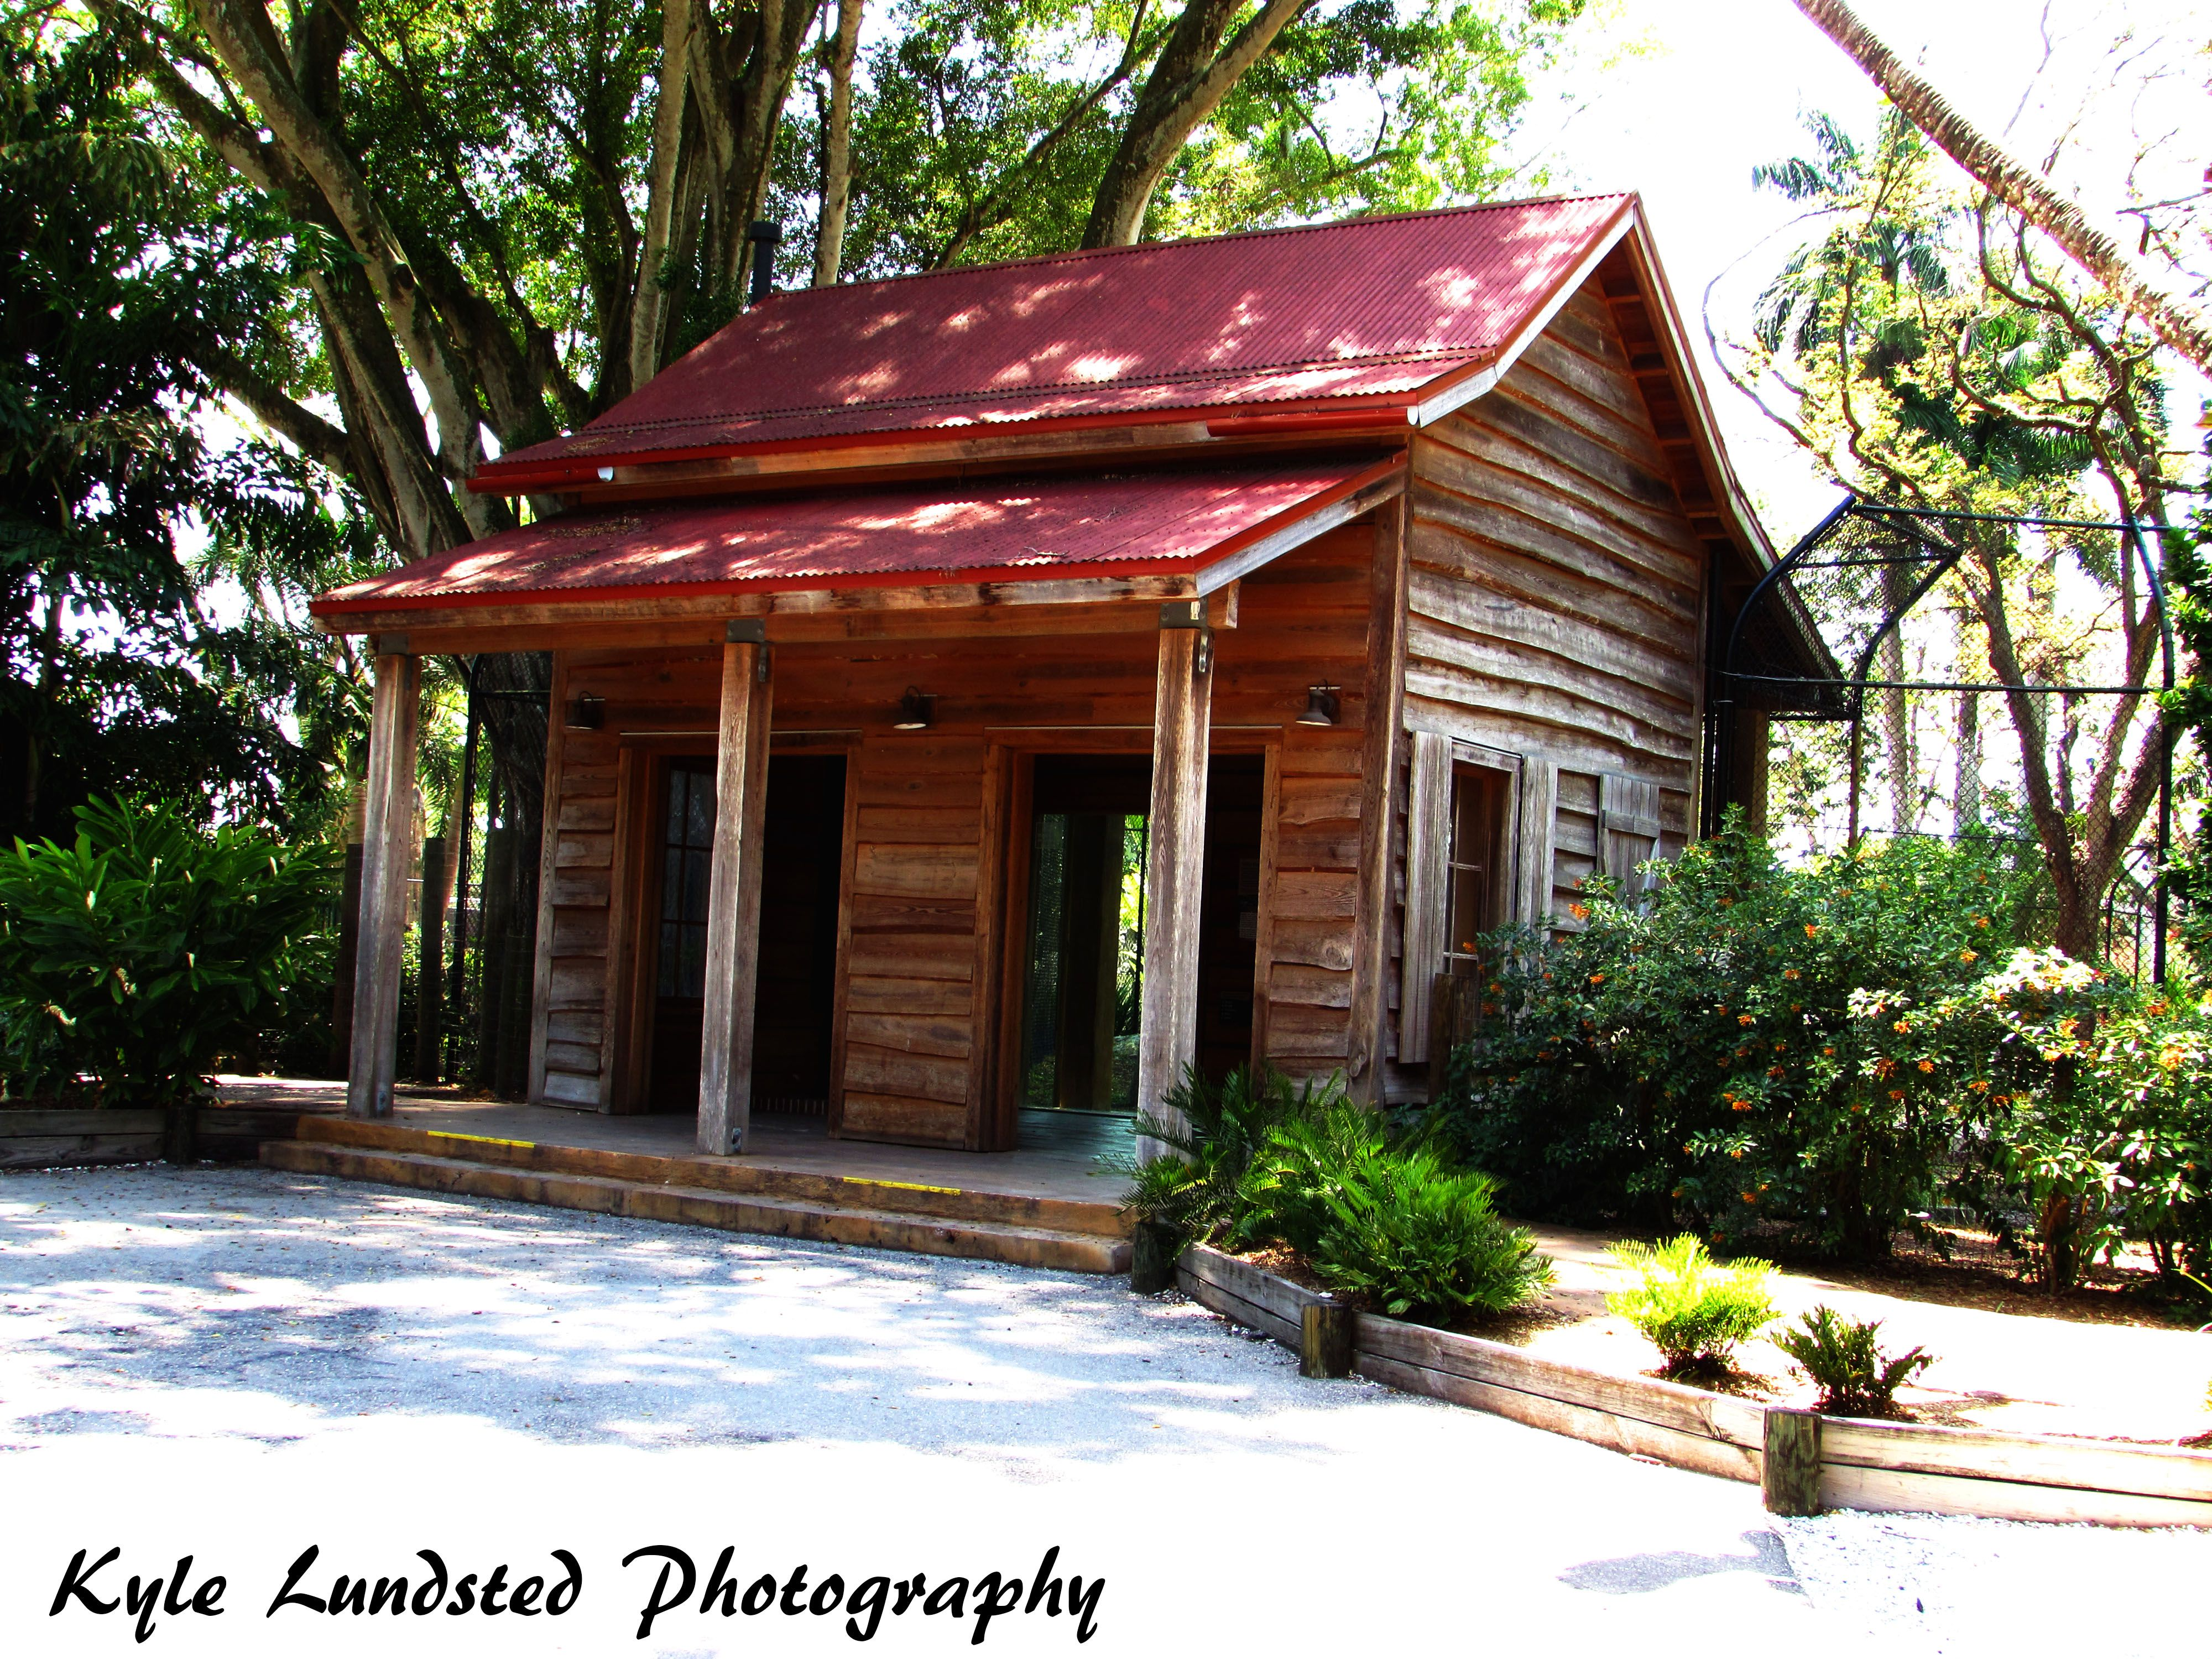 An old building at Naples Zoo taken by a Canon PowerShot SX510 HS